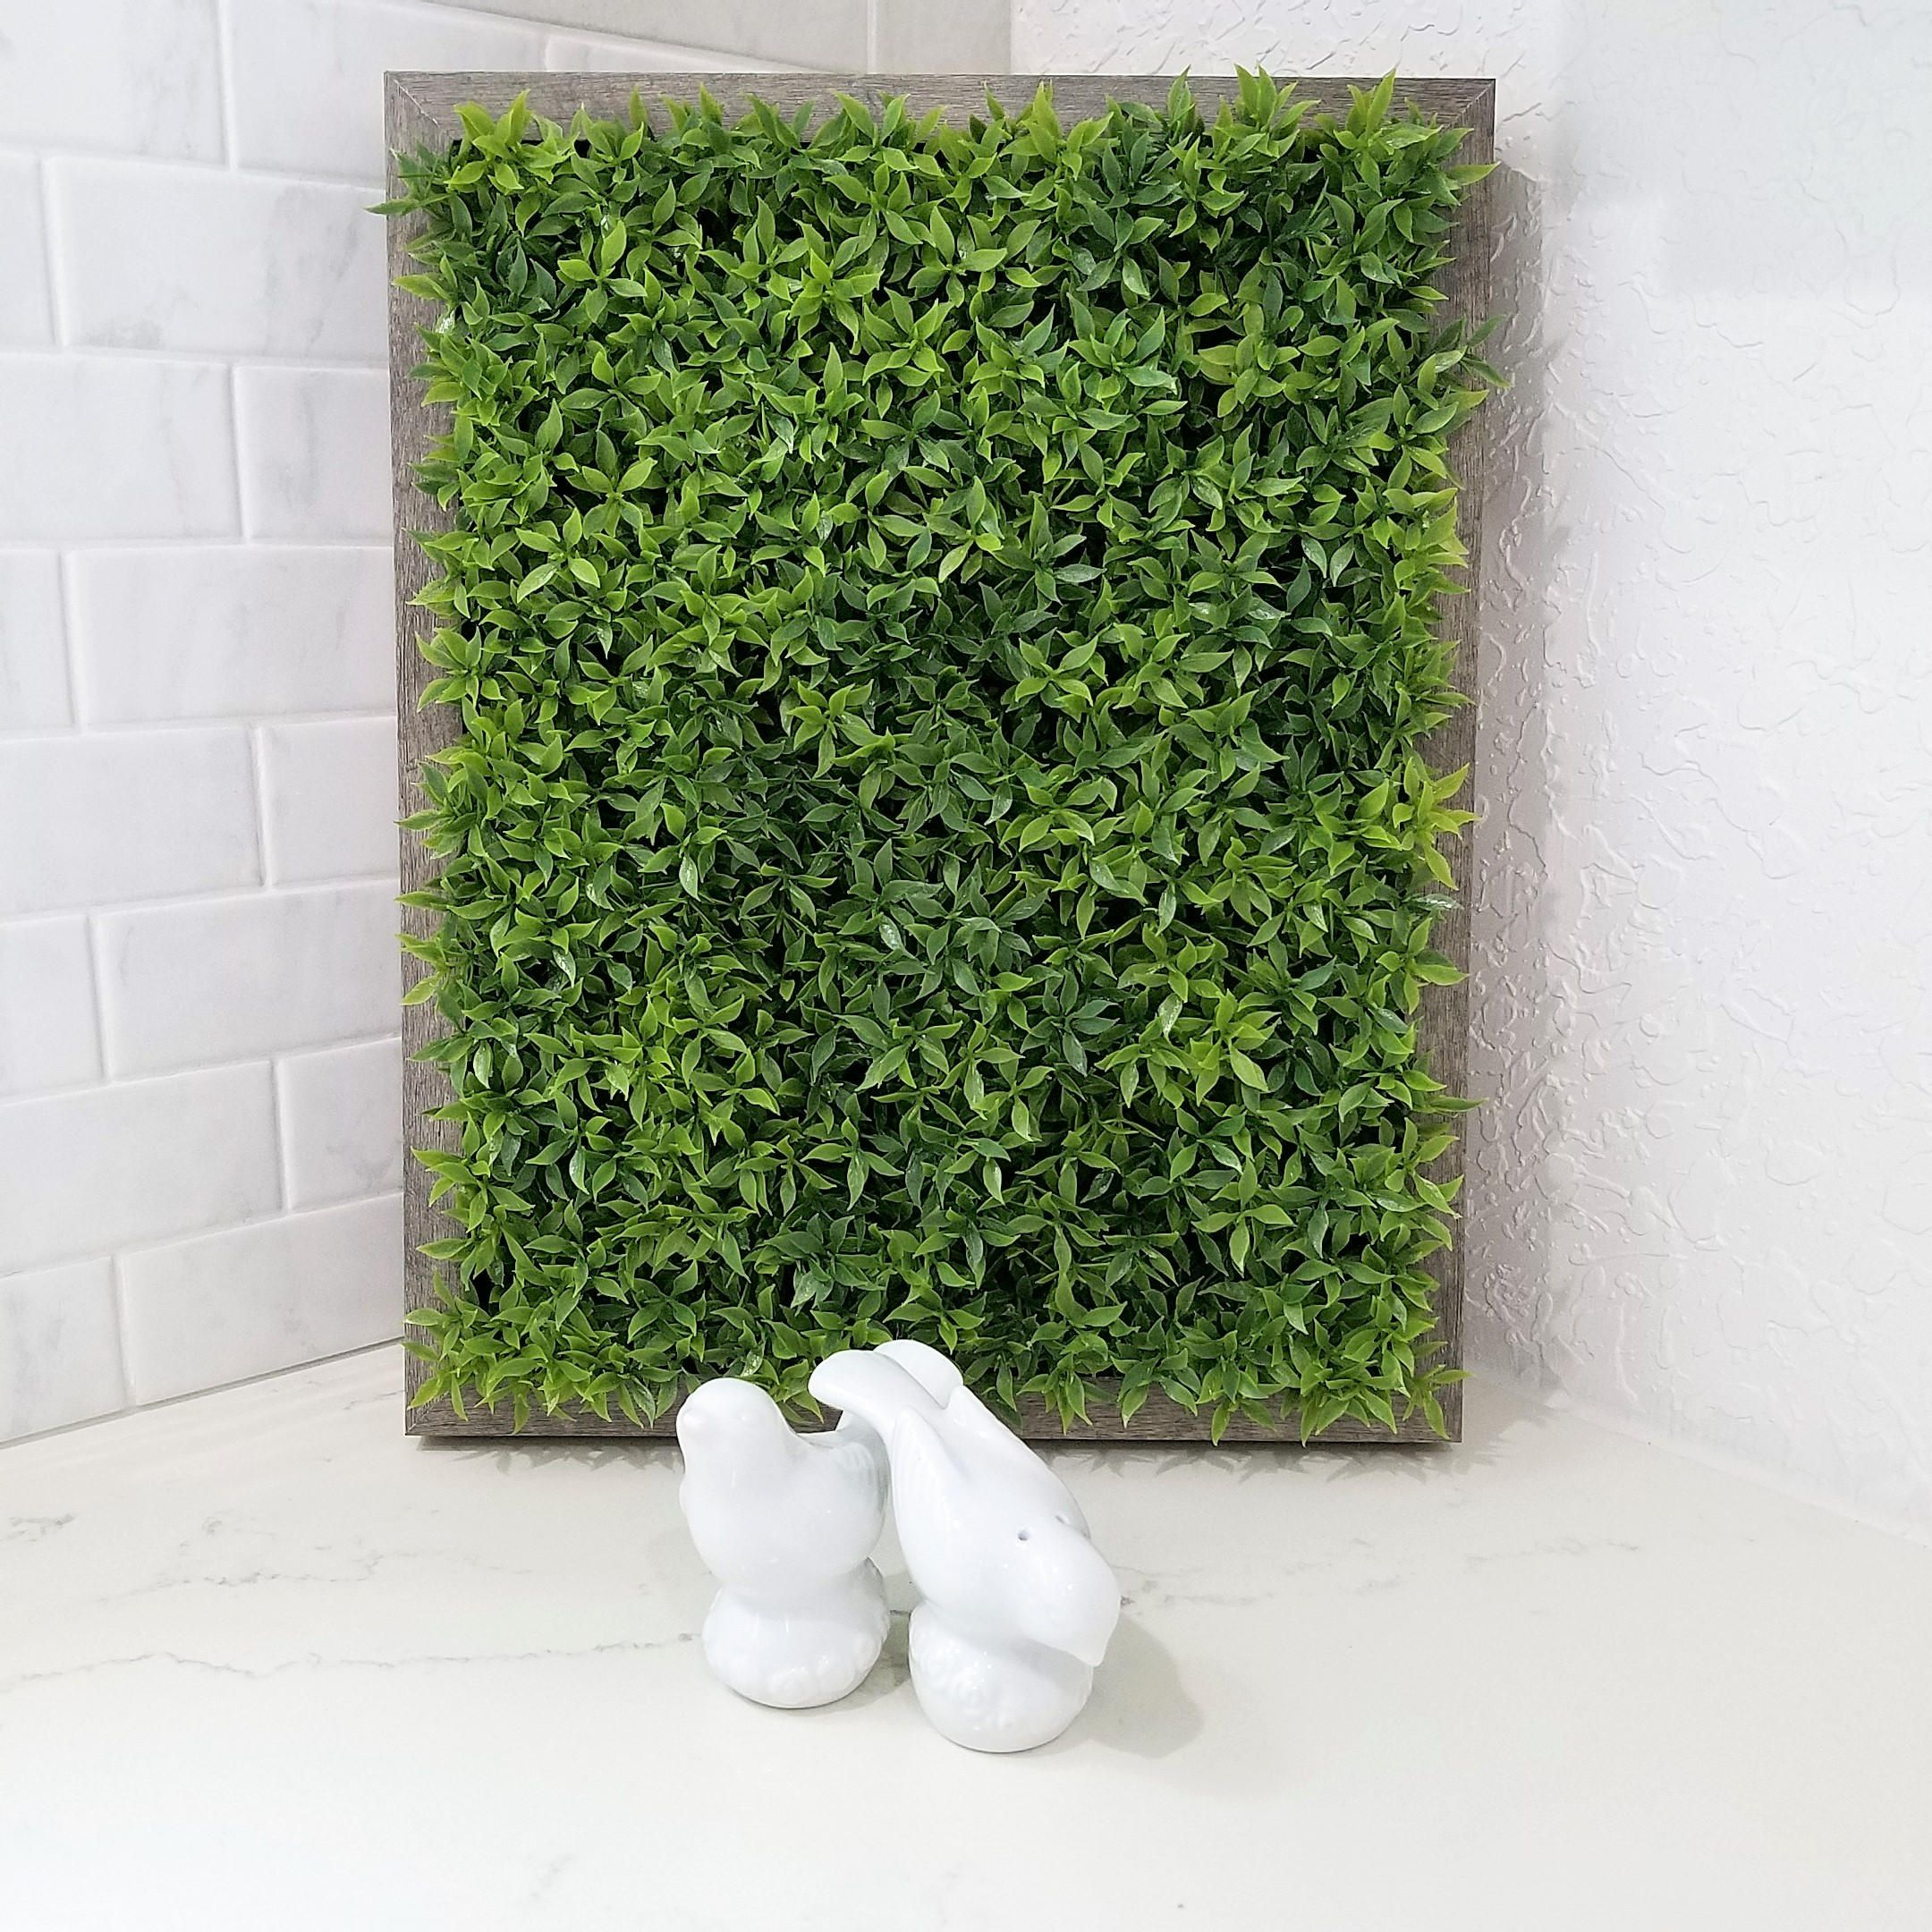 Wall  Plant  Artificial  Plants  Green Wall  living wall